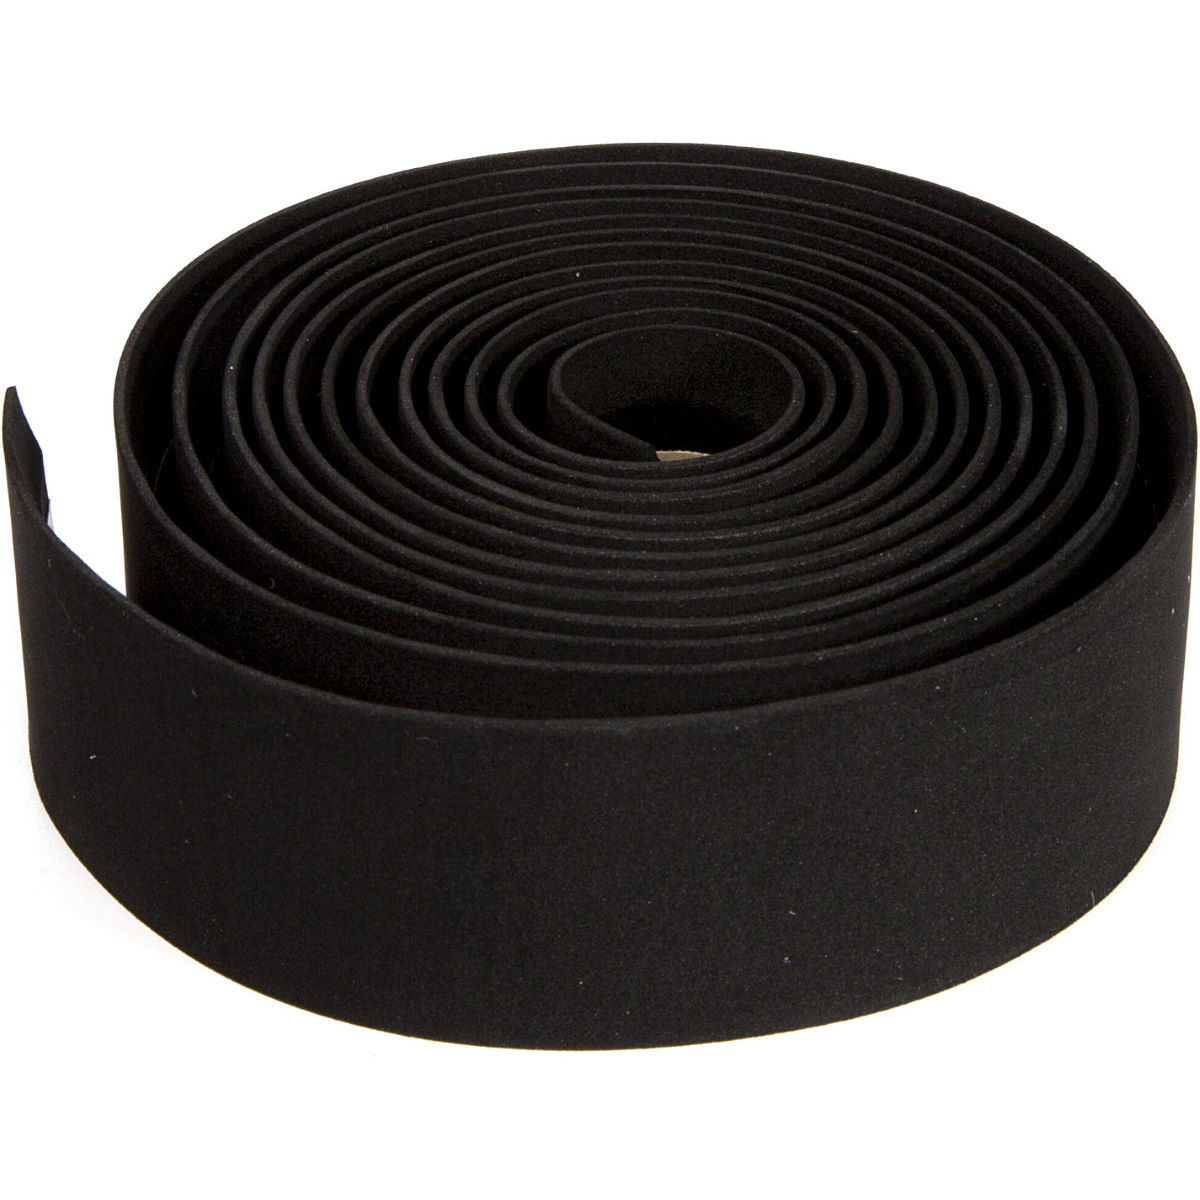 BBB BBB BHT-01 Race Ribbon Bar Tape   Bar Tape